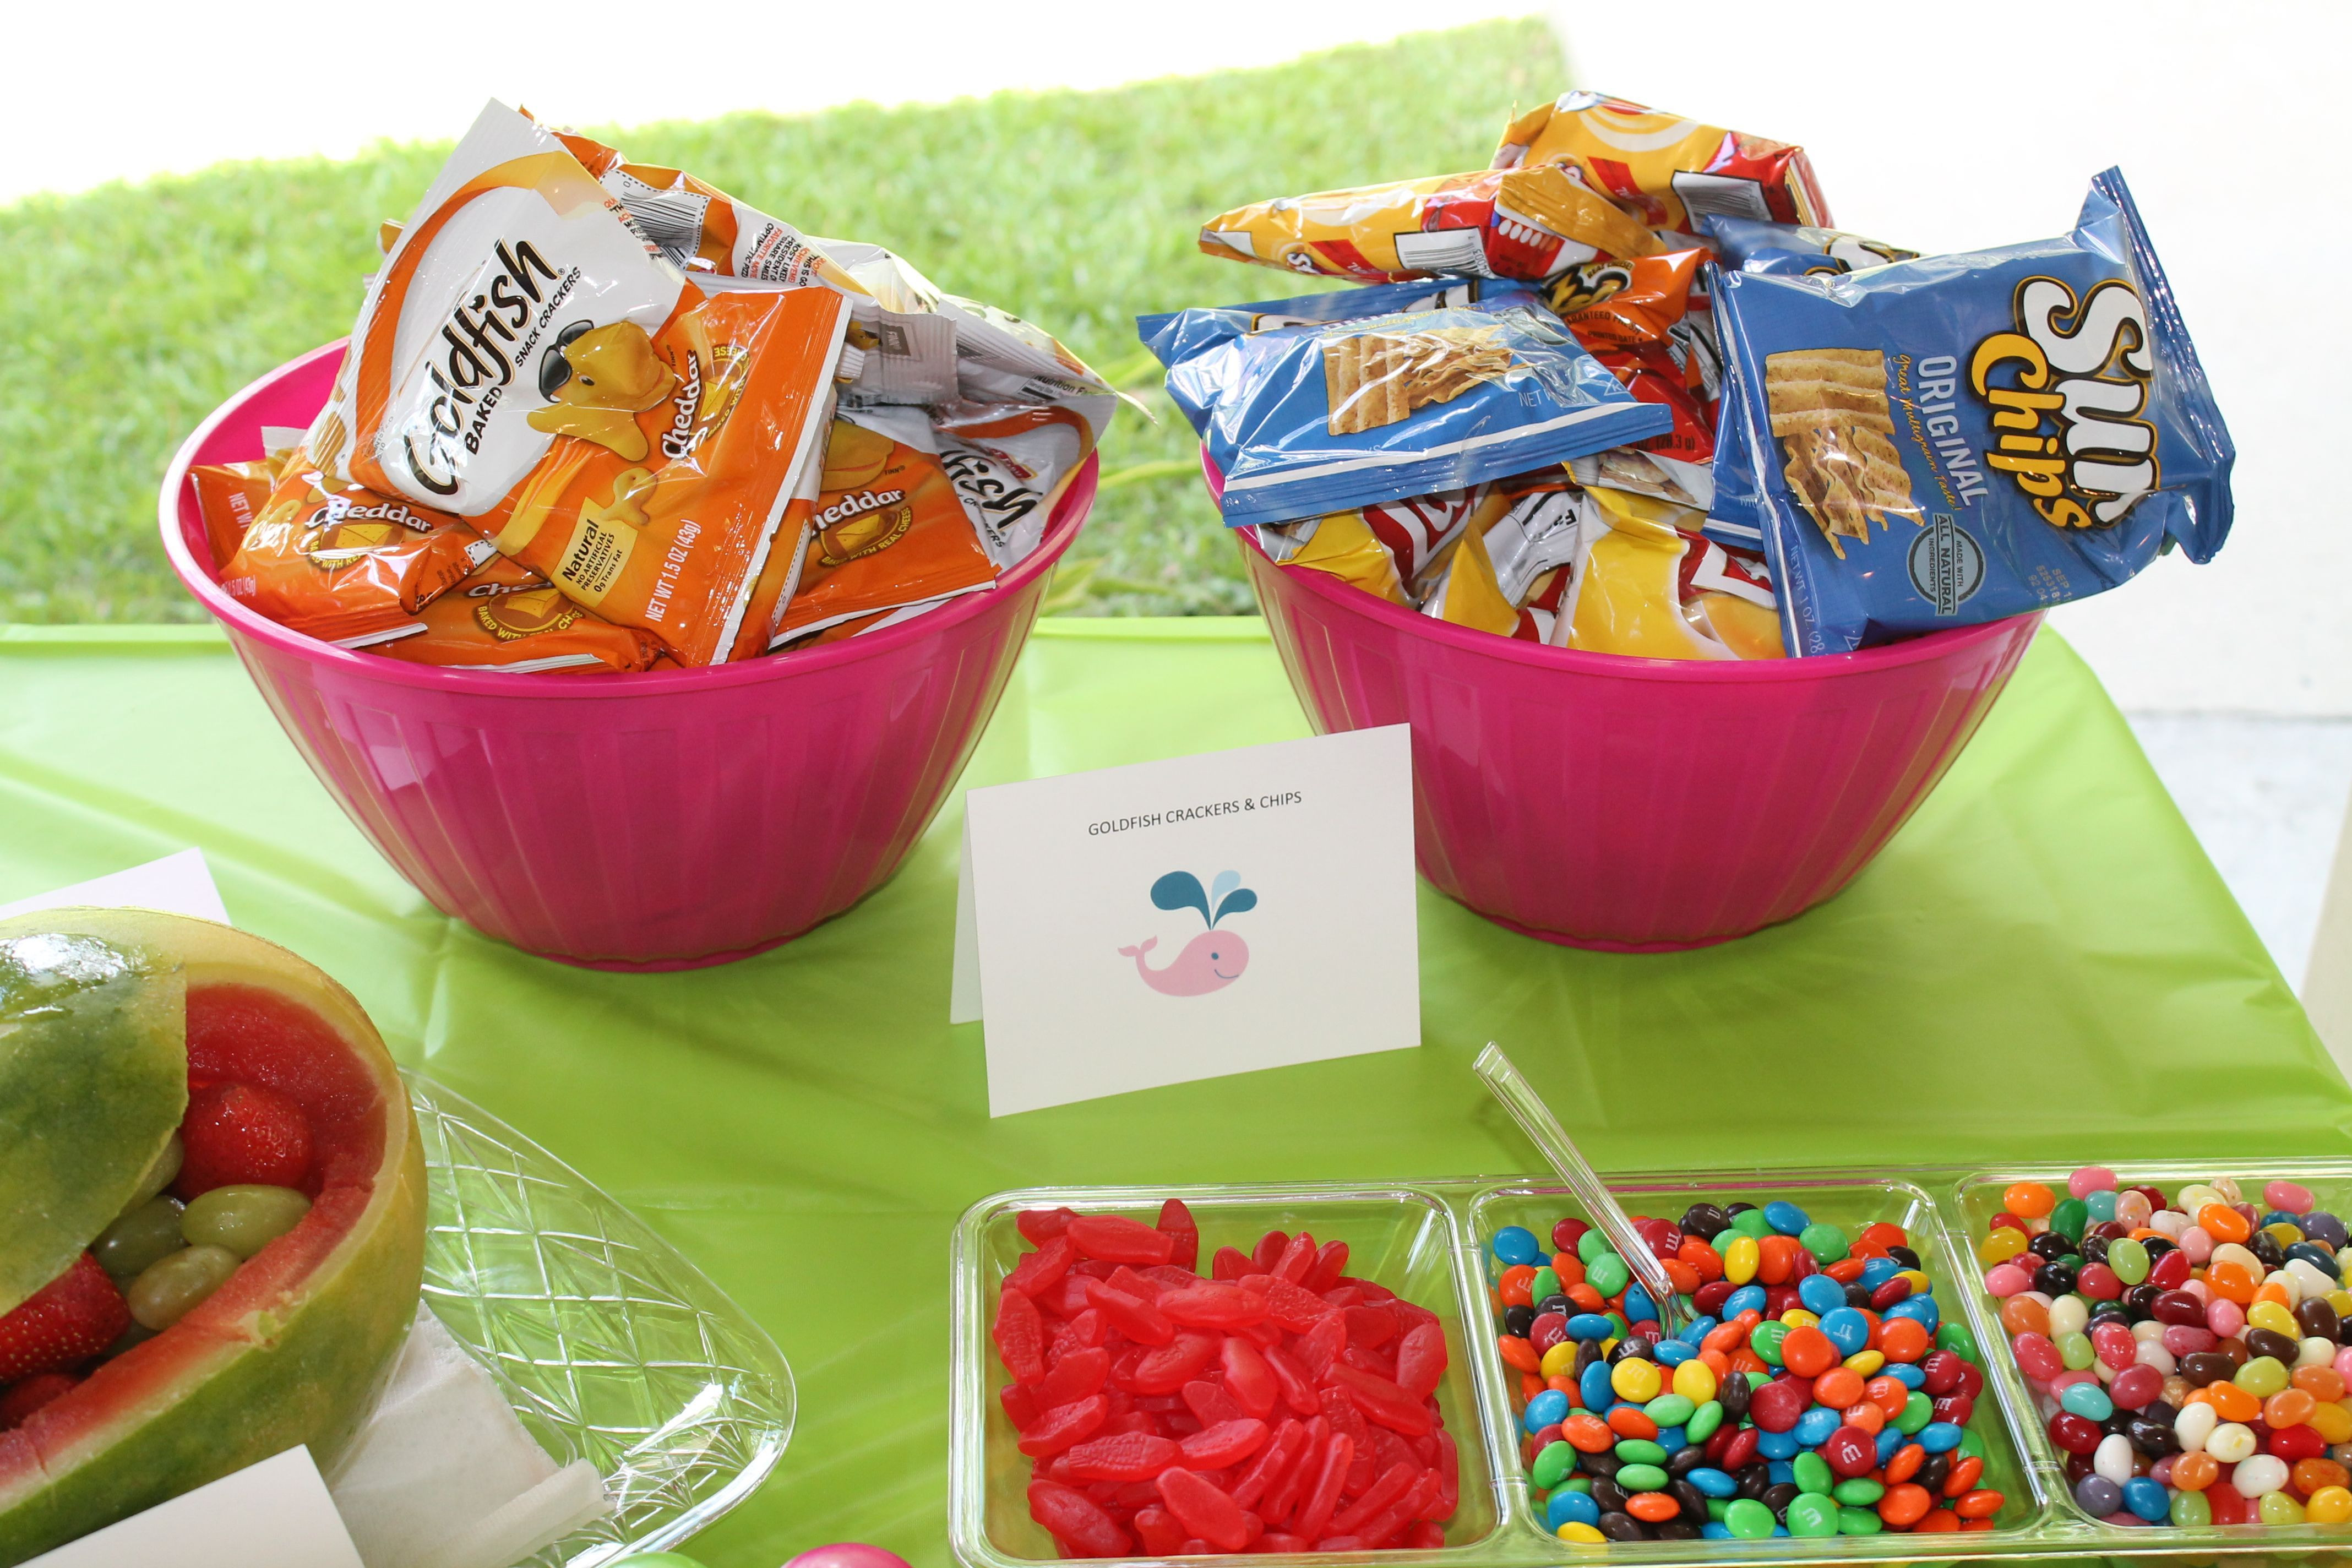 Kids Pool Party Food Ideas  Goldfish crackers fit the theme but the chips were more